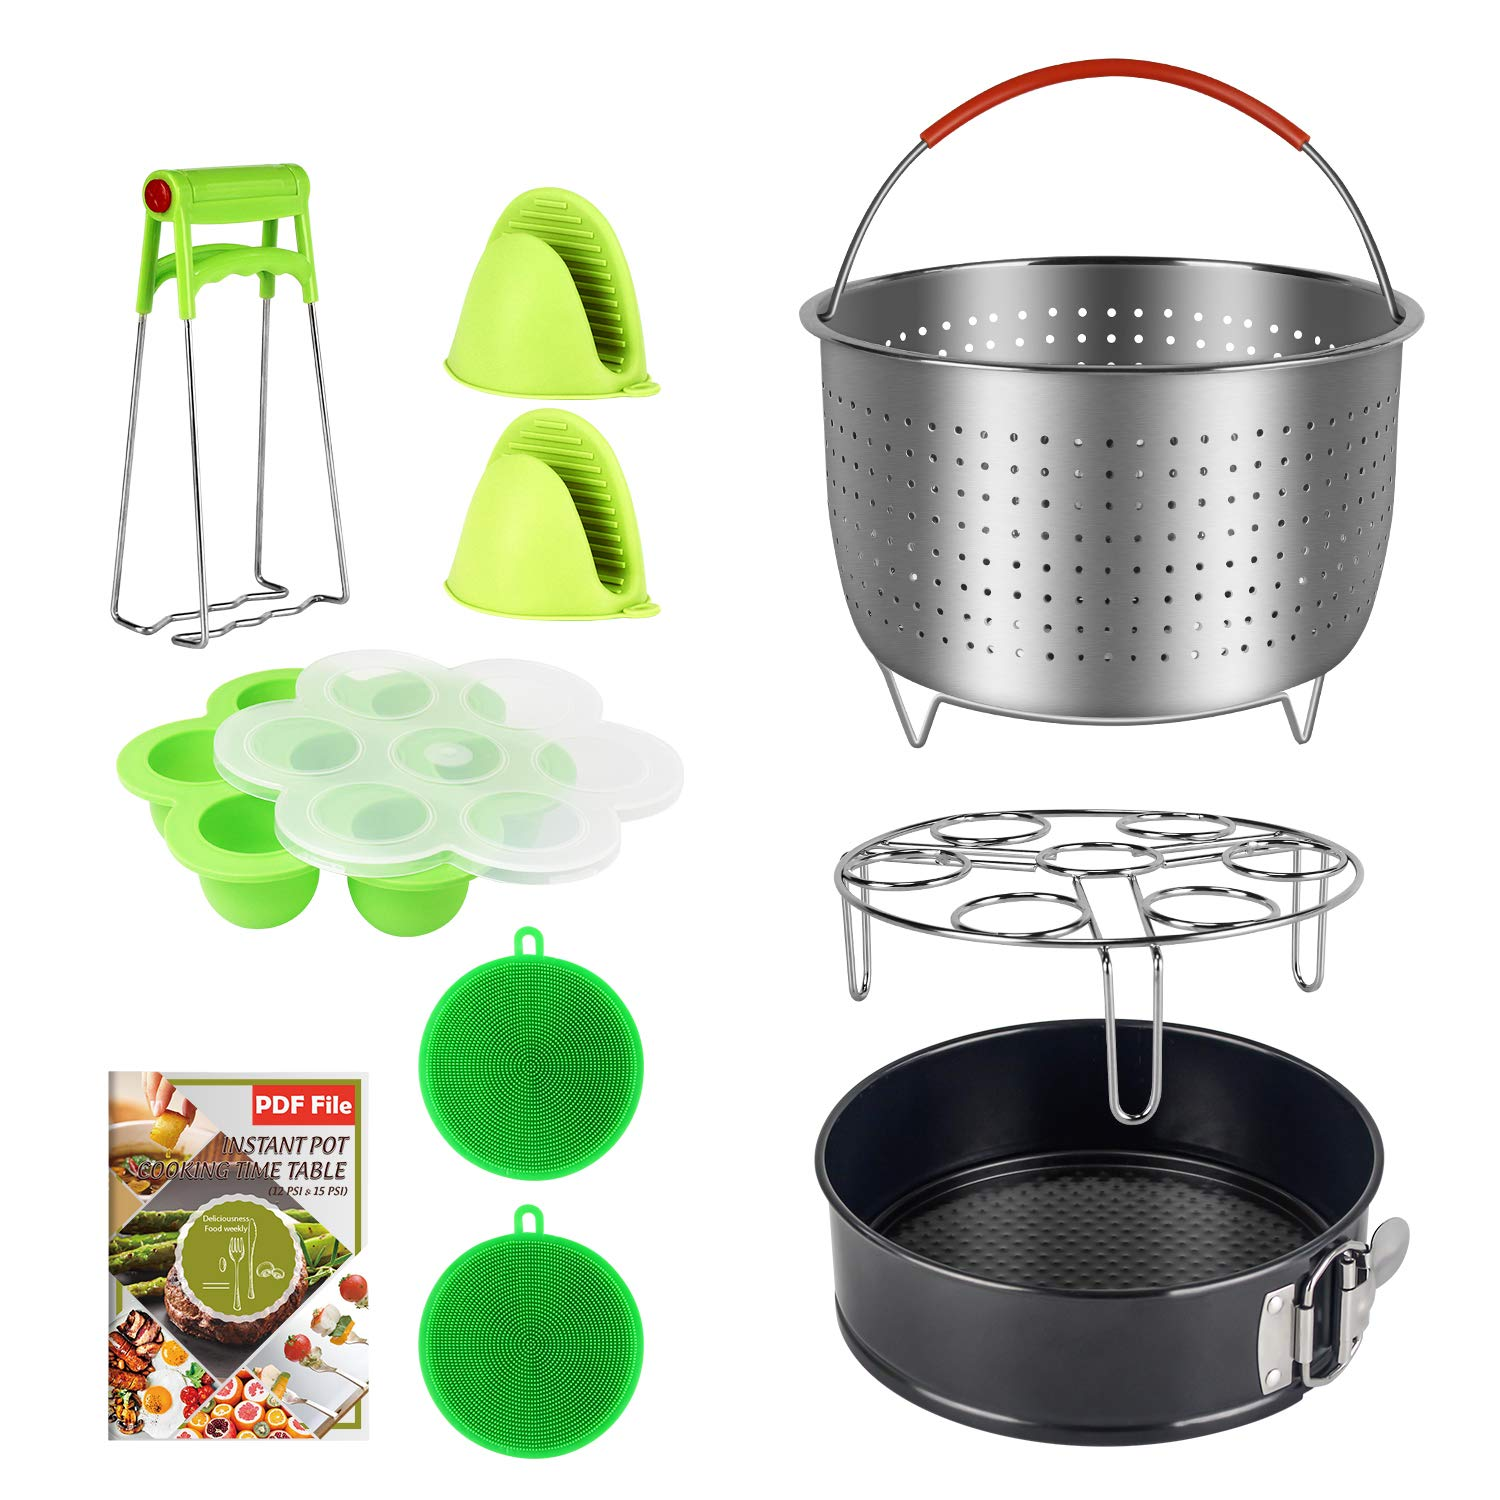 9 Piece Accessories Kits Compatible with Instant Pot 6, 8 Qt - Large Stainless Steel Steamer Basket, Non-Stick Springform Pan, Egg Rack, Egg Bites Mold, Oven Mitts, Bowl Clip and Silicone Scrub Pad